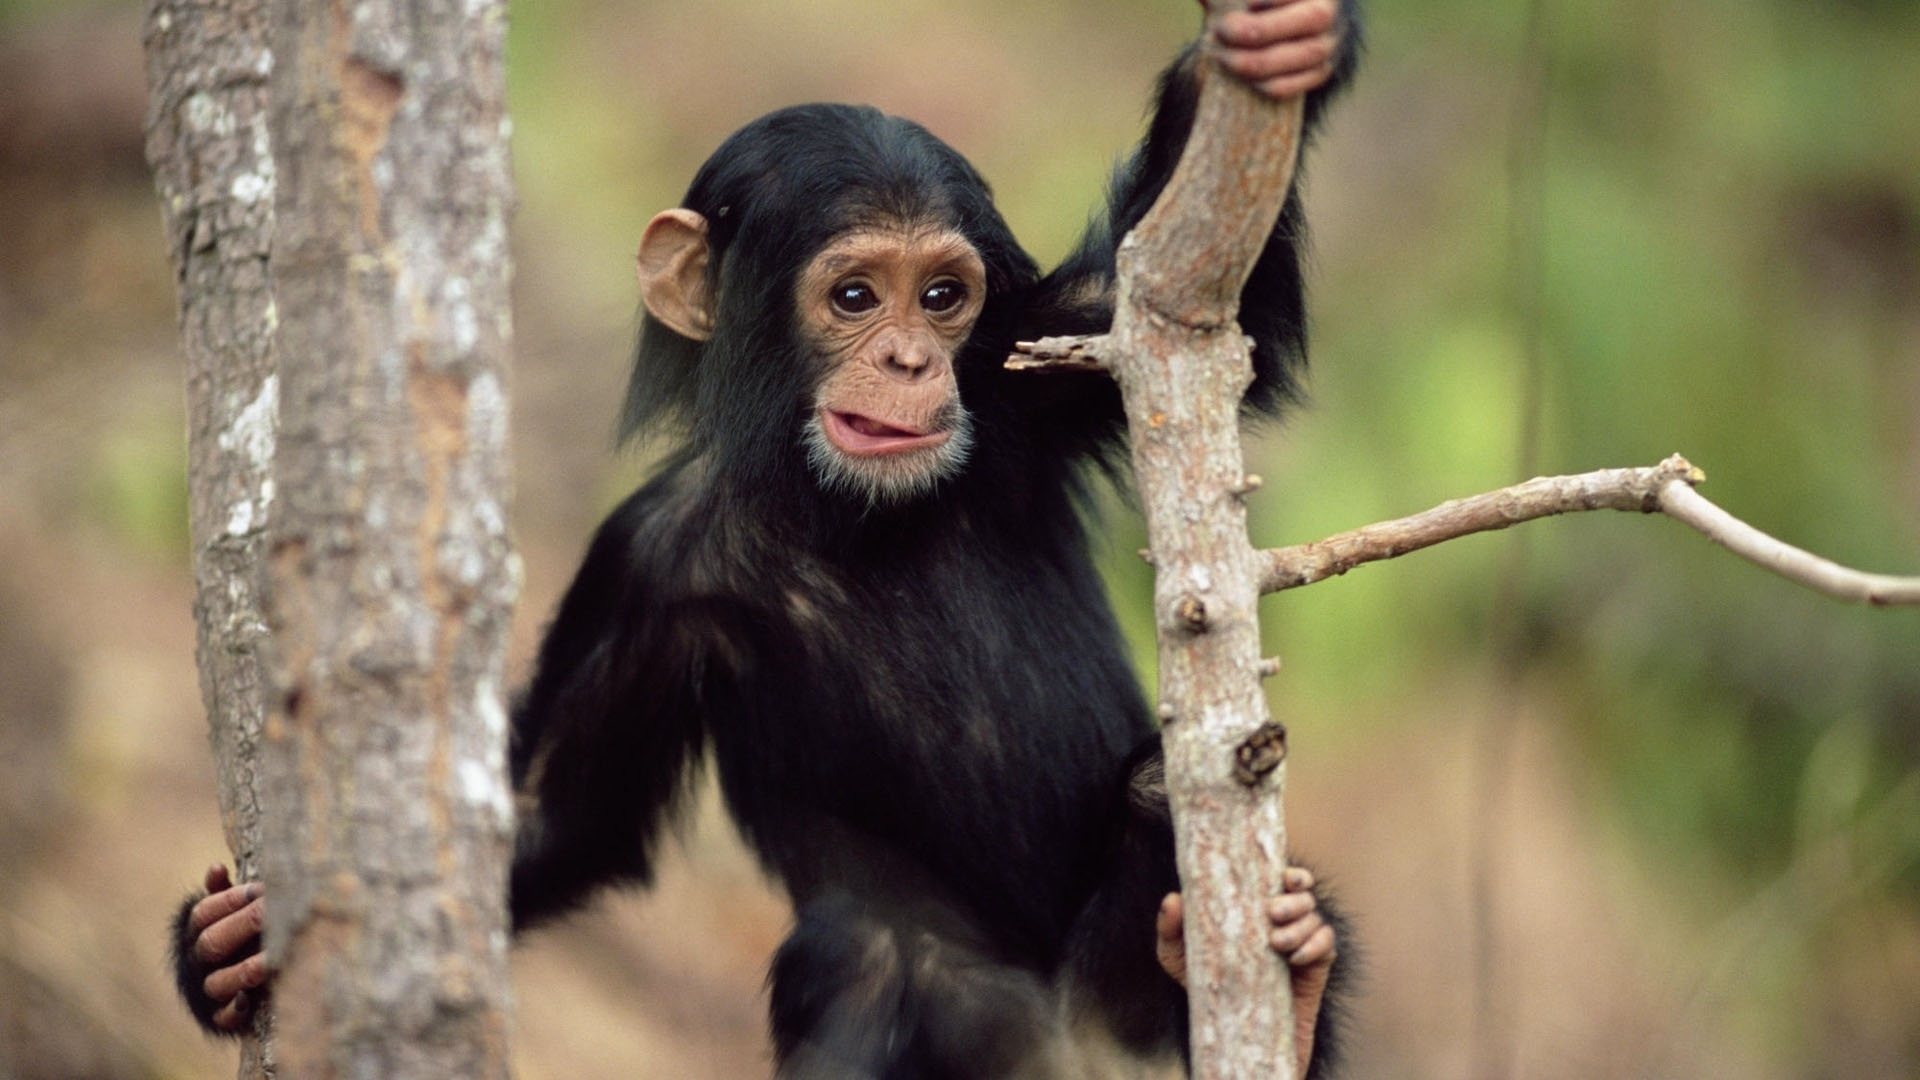 45119 Screensavers and Wallpapers Monkeys for phone. Download Animals, Monkeys pictures for free